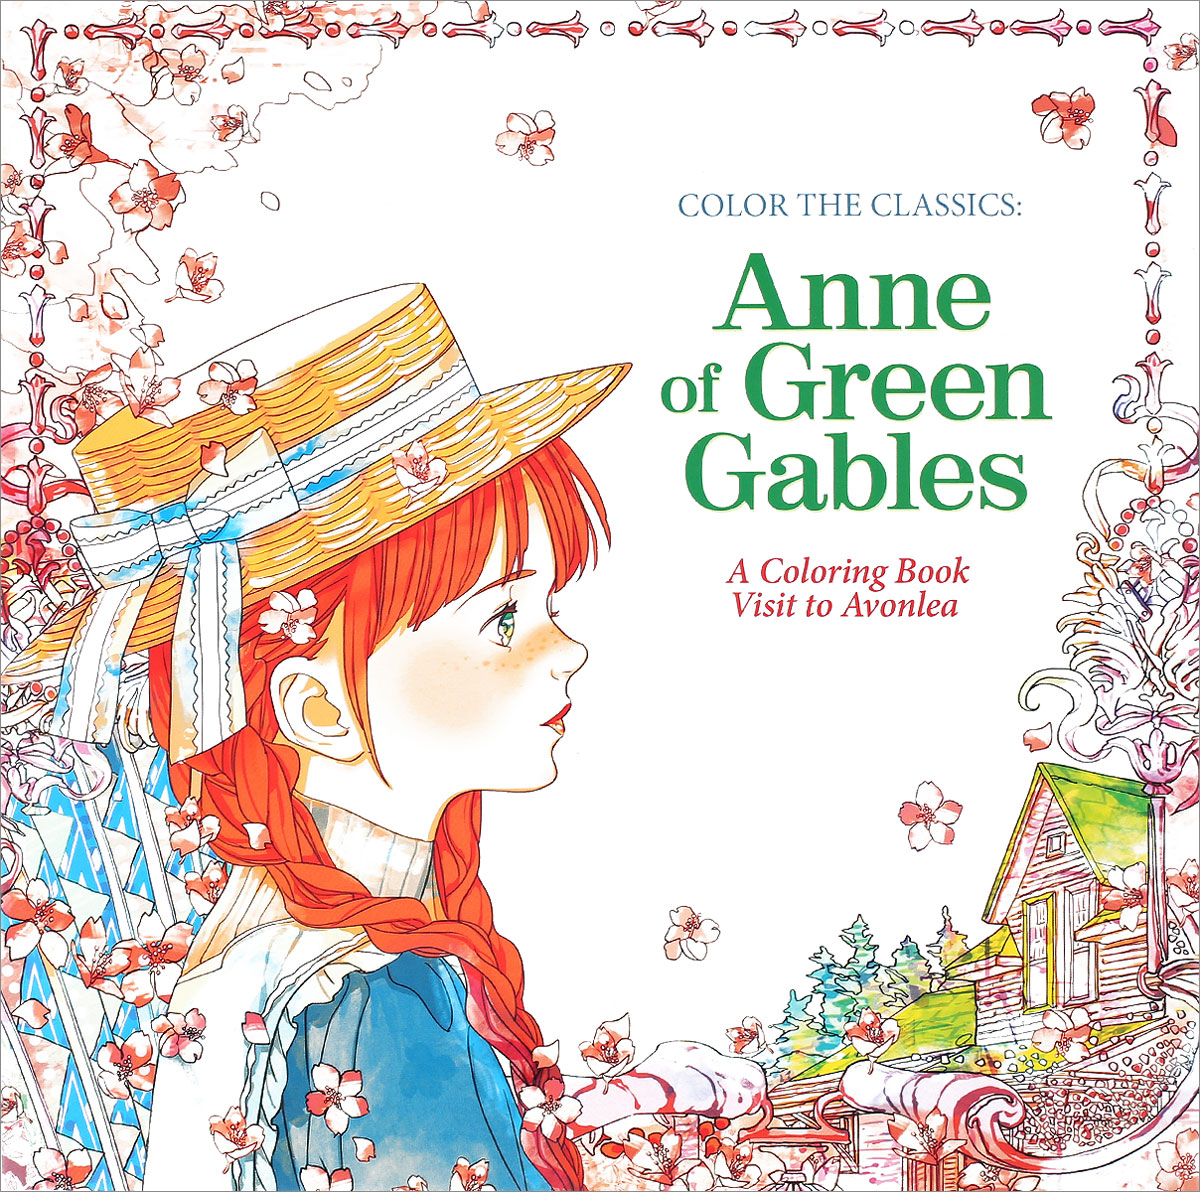 Color the Classics: Anne of Green Gables: A Coloring Book Visit to Avonlea lucy maud montgomery anne of green gables